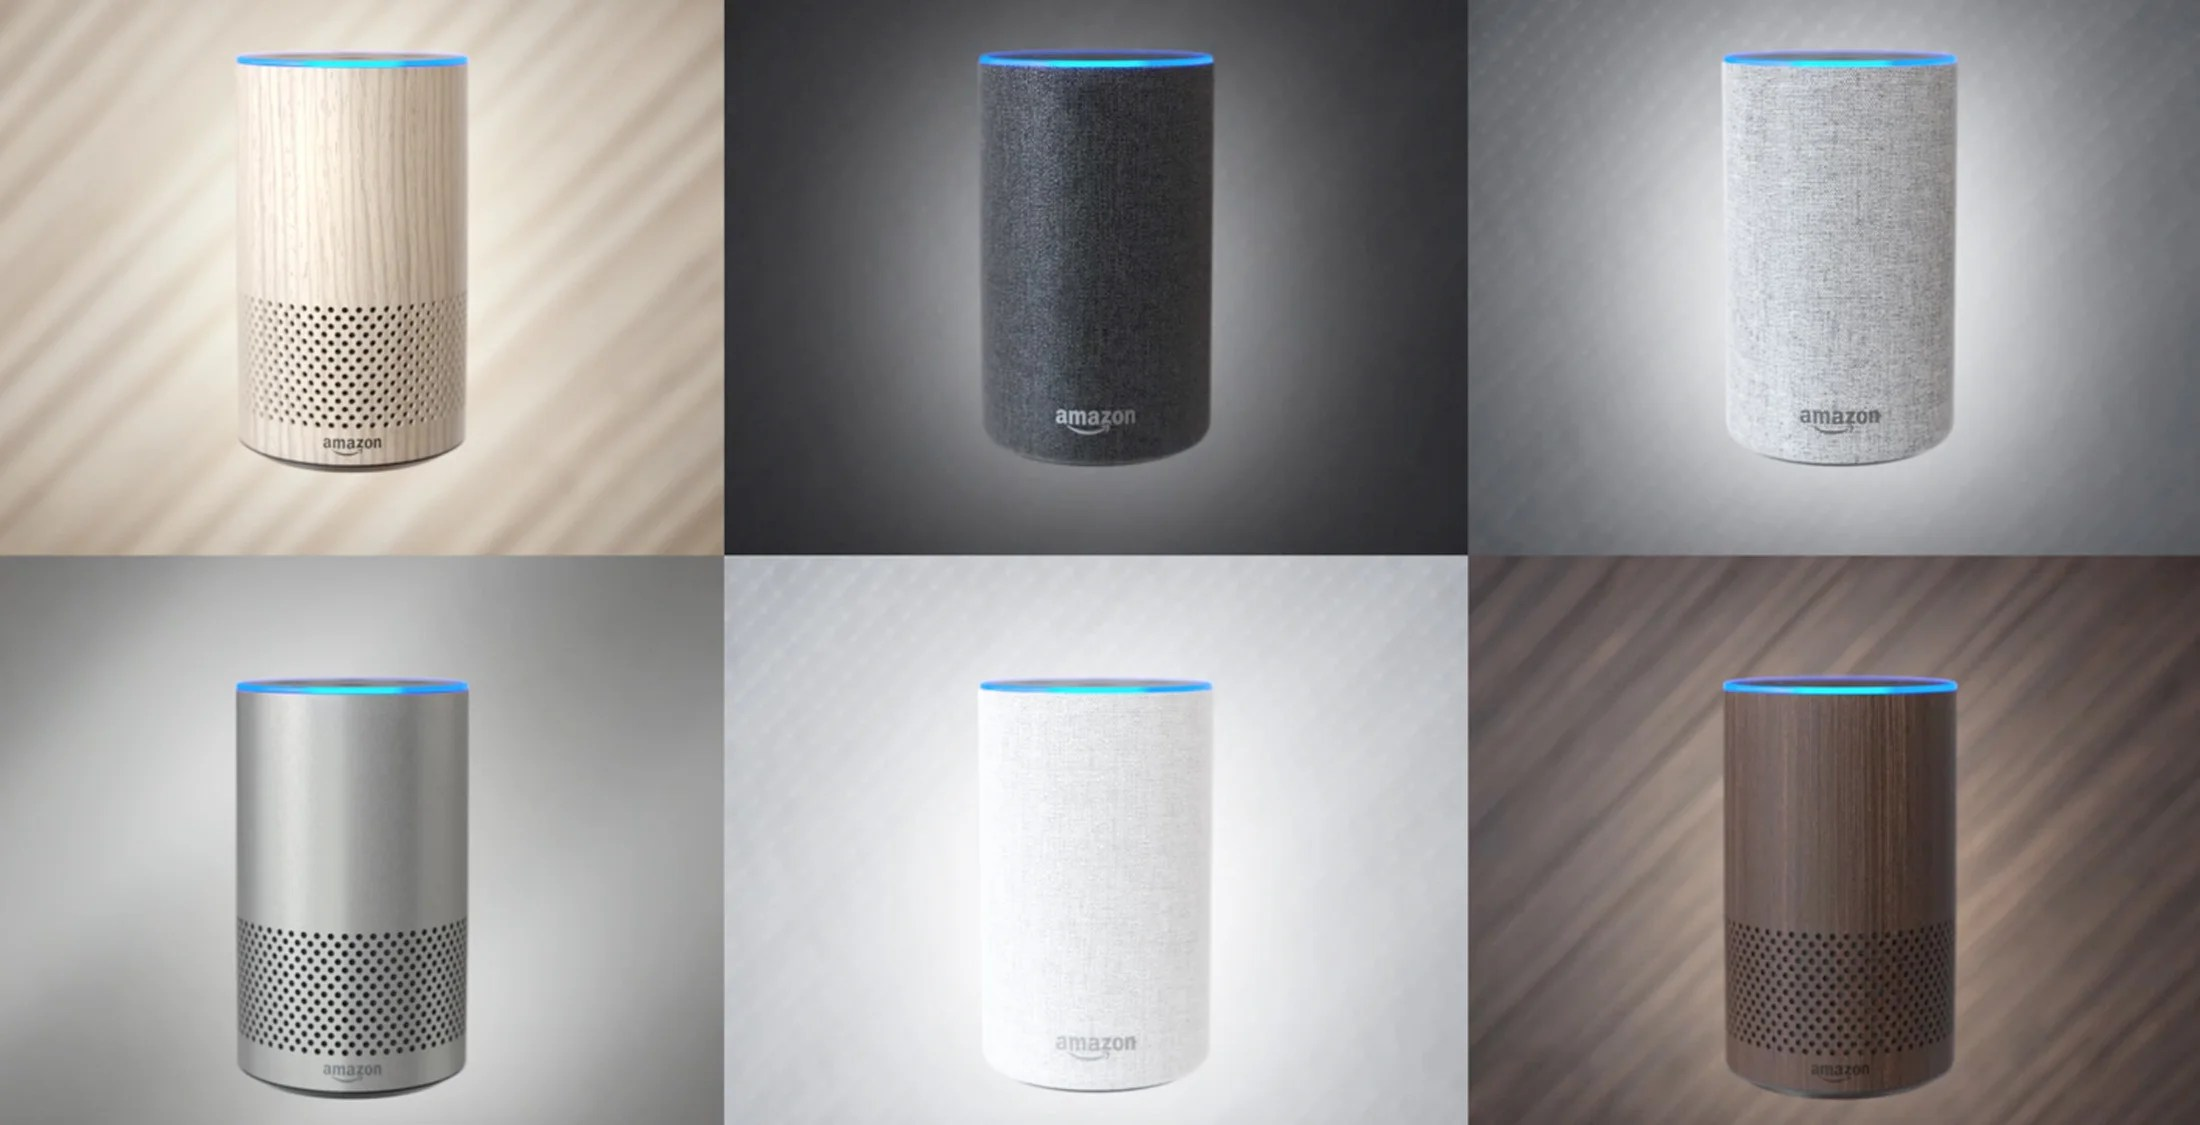 Amazon Echo Plus vs Echo 2 Whats the difference